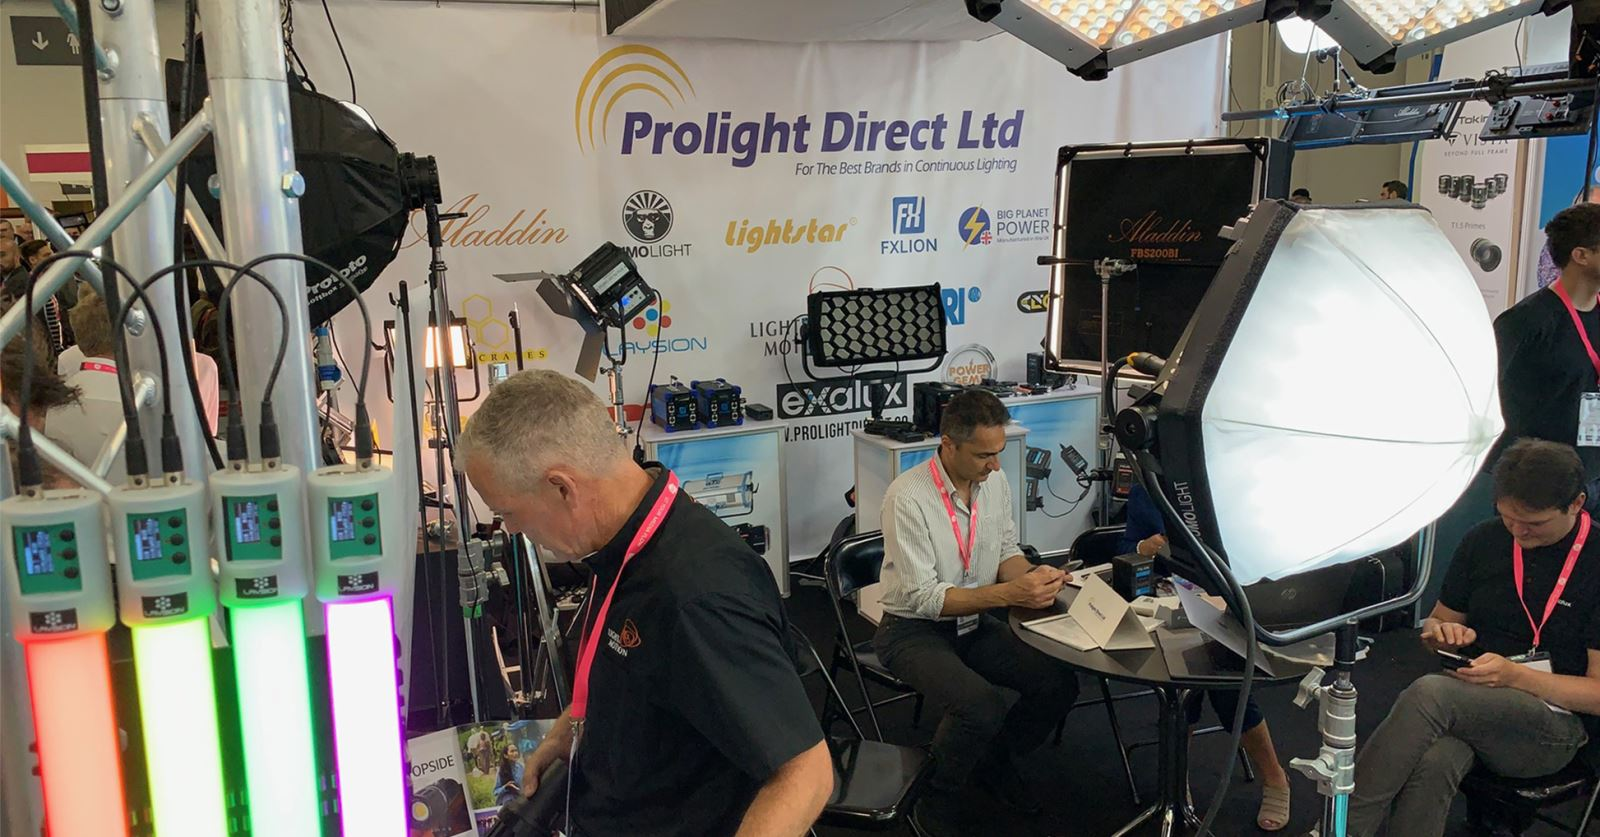 GTC sponsor Prolight Direct is at the Media Production Show with a wide range of lighting tools on display